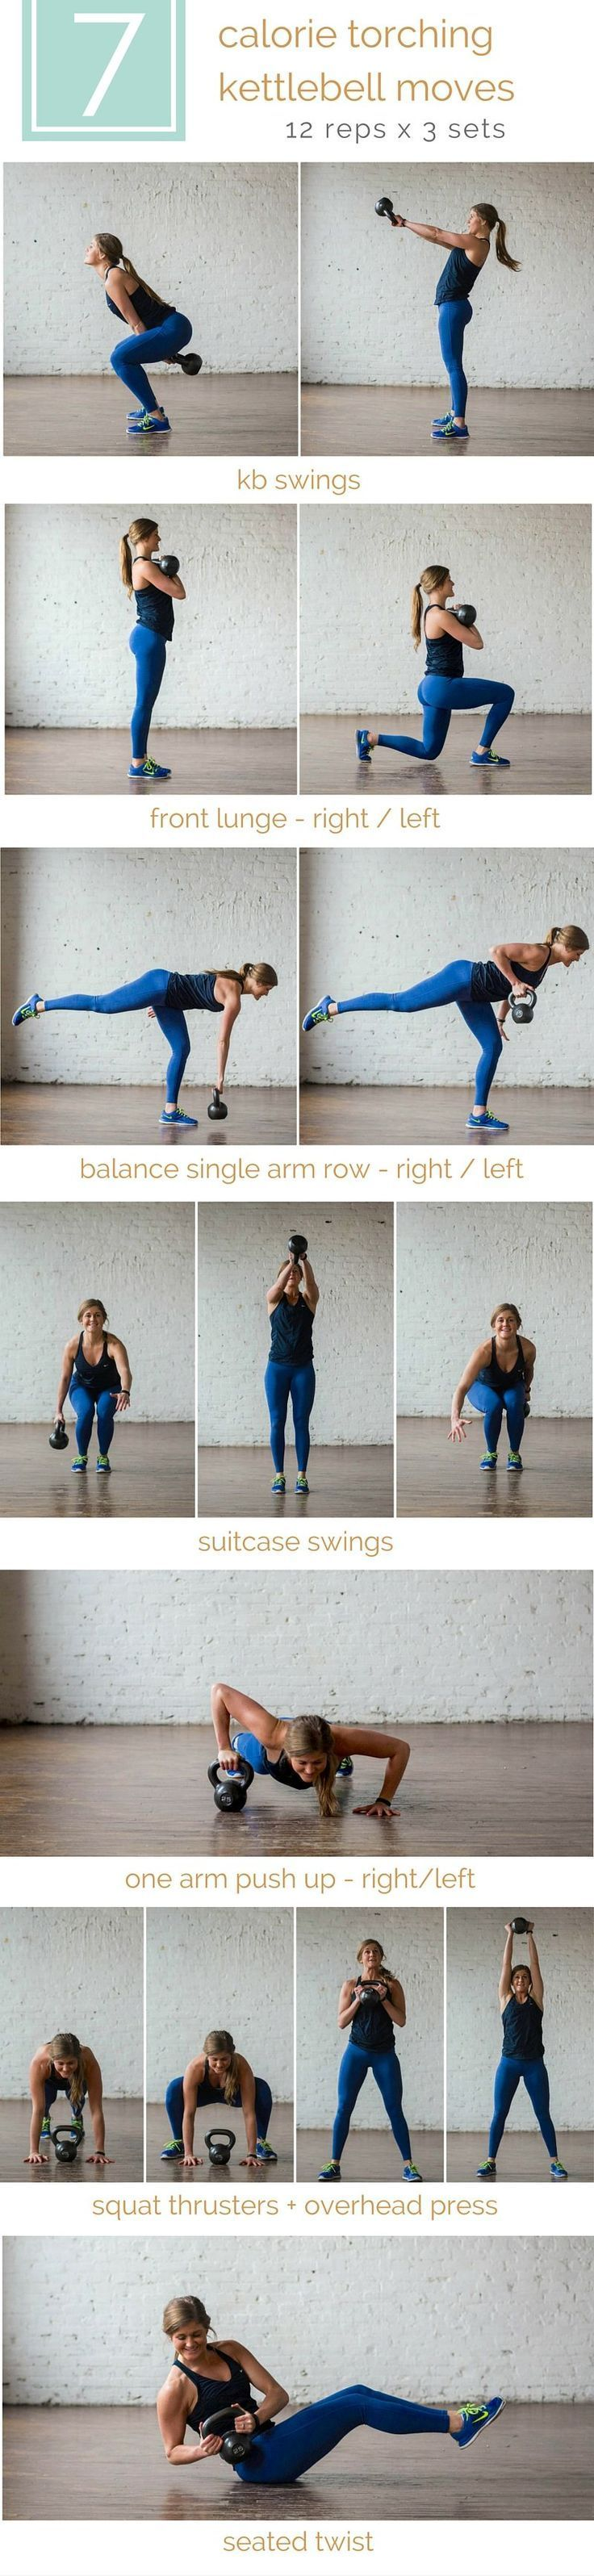 7 calorie torching kettlebell moves + hiit workout | torch calories while simultaneously strengthening your entire body with this killer kettlebell workout.| Posed By: AdvancedWeightLossTips.com